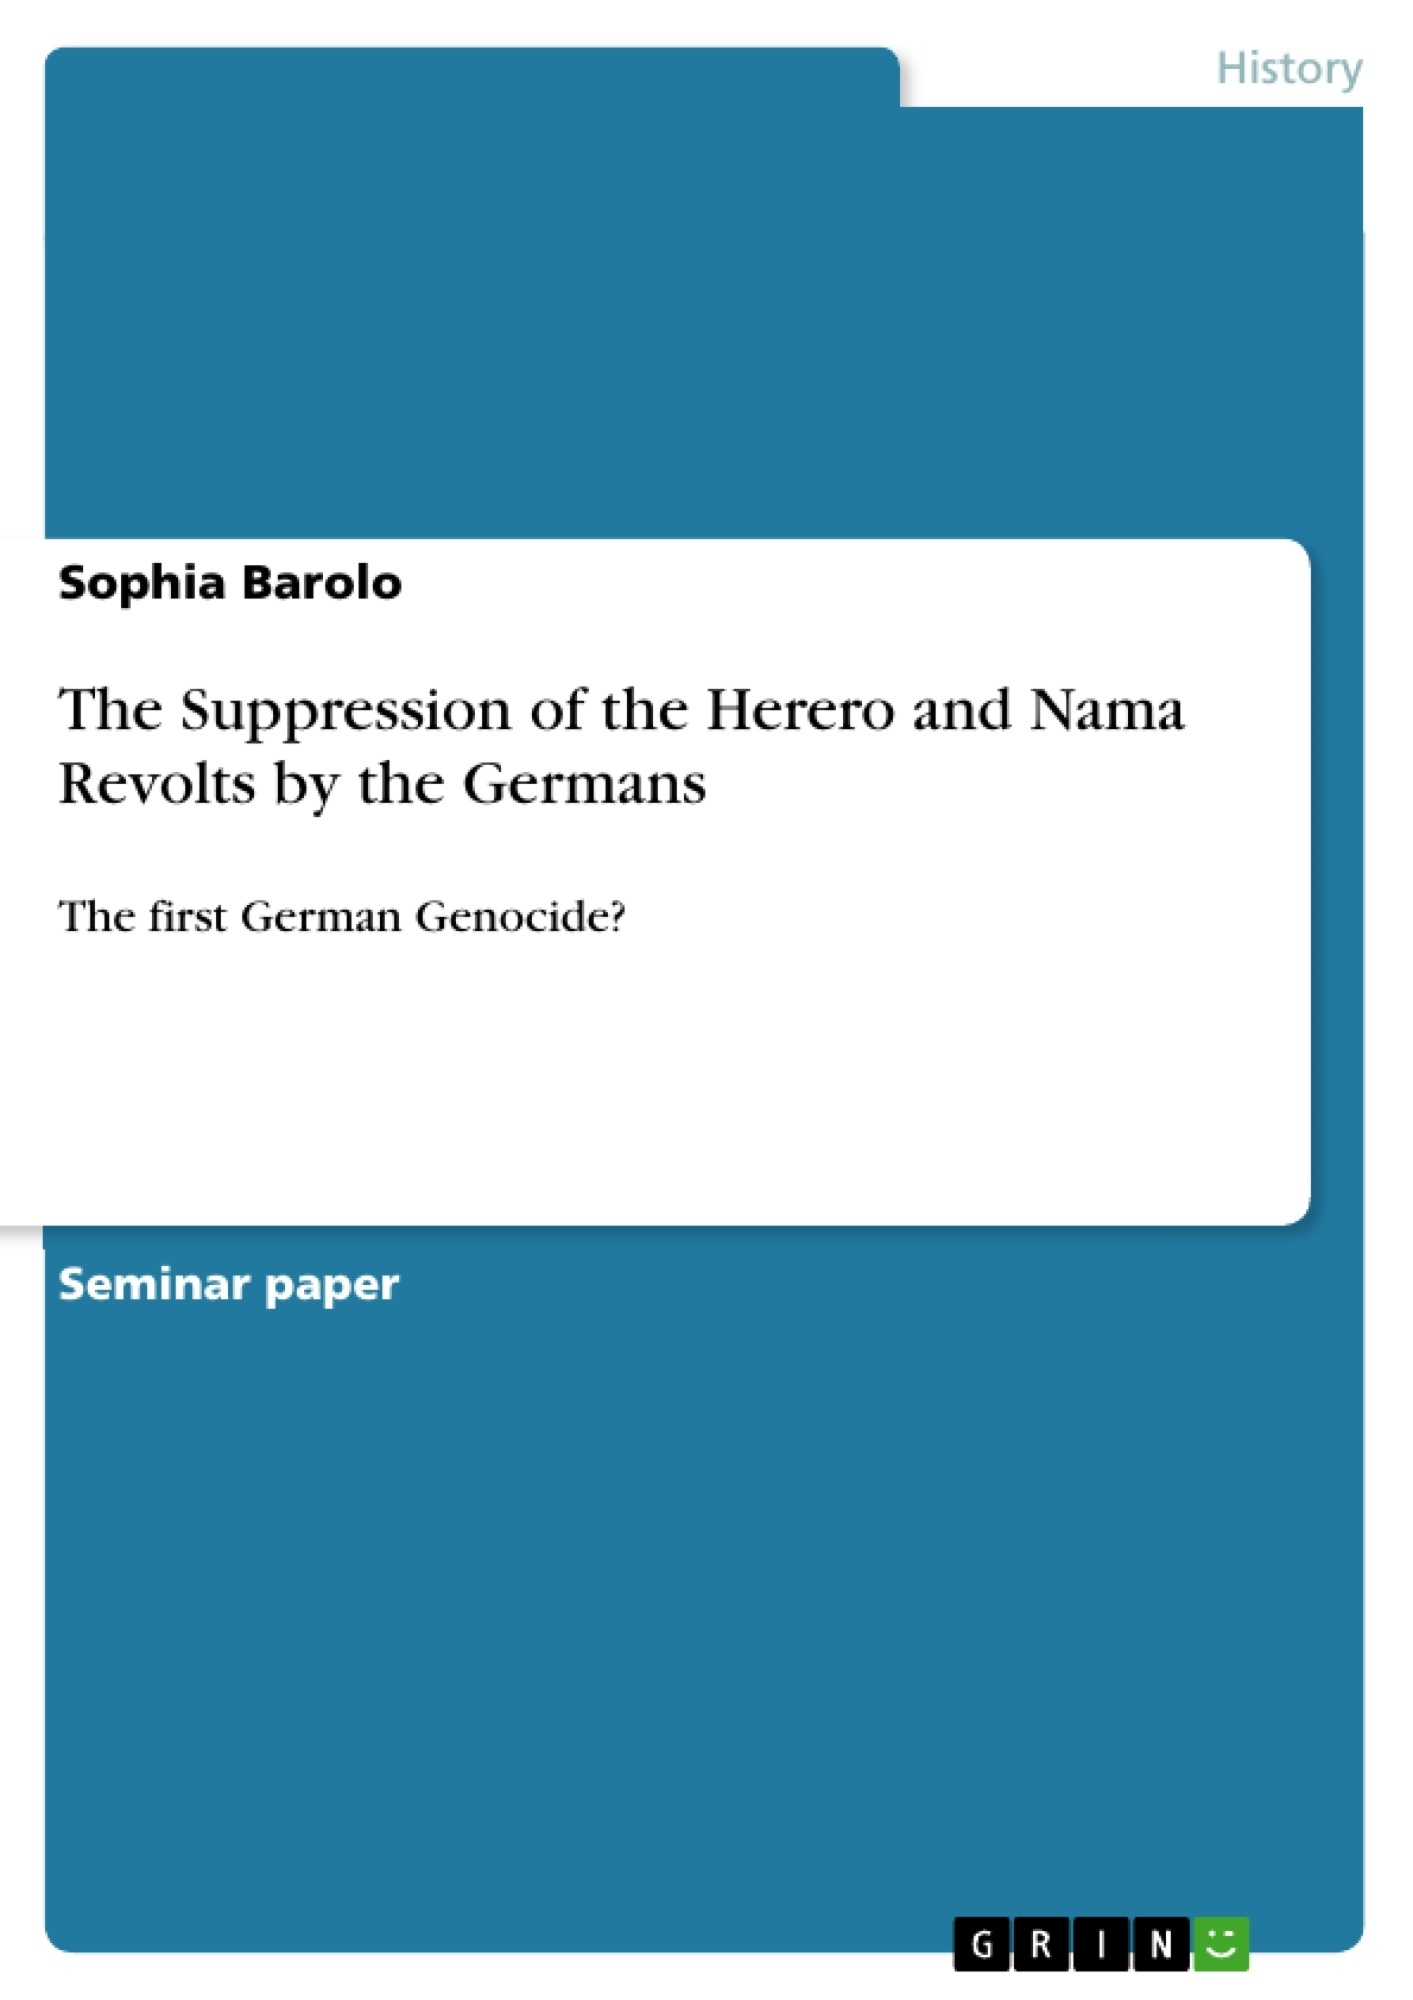 Title: The Suppression of the Herero and Nama Revolts by the Germans